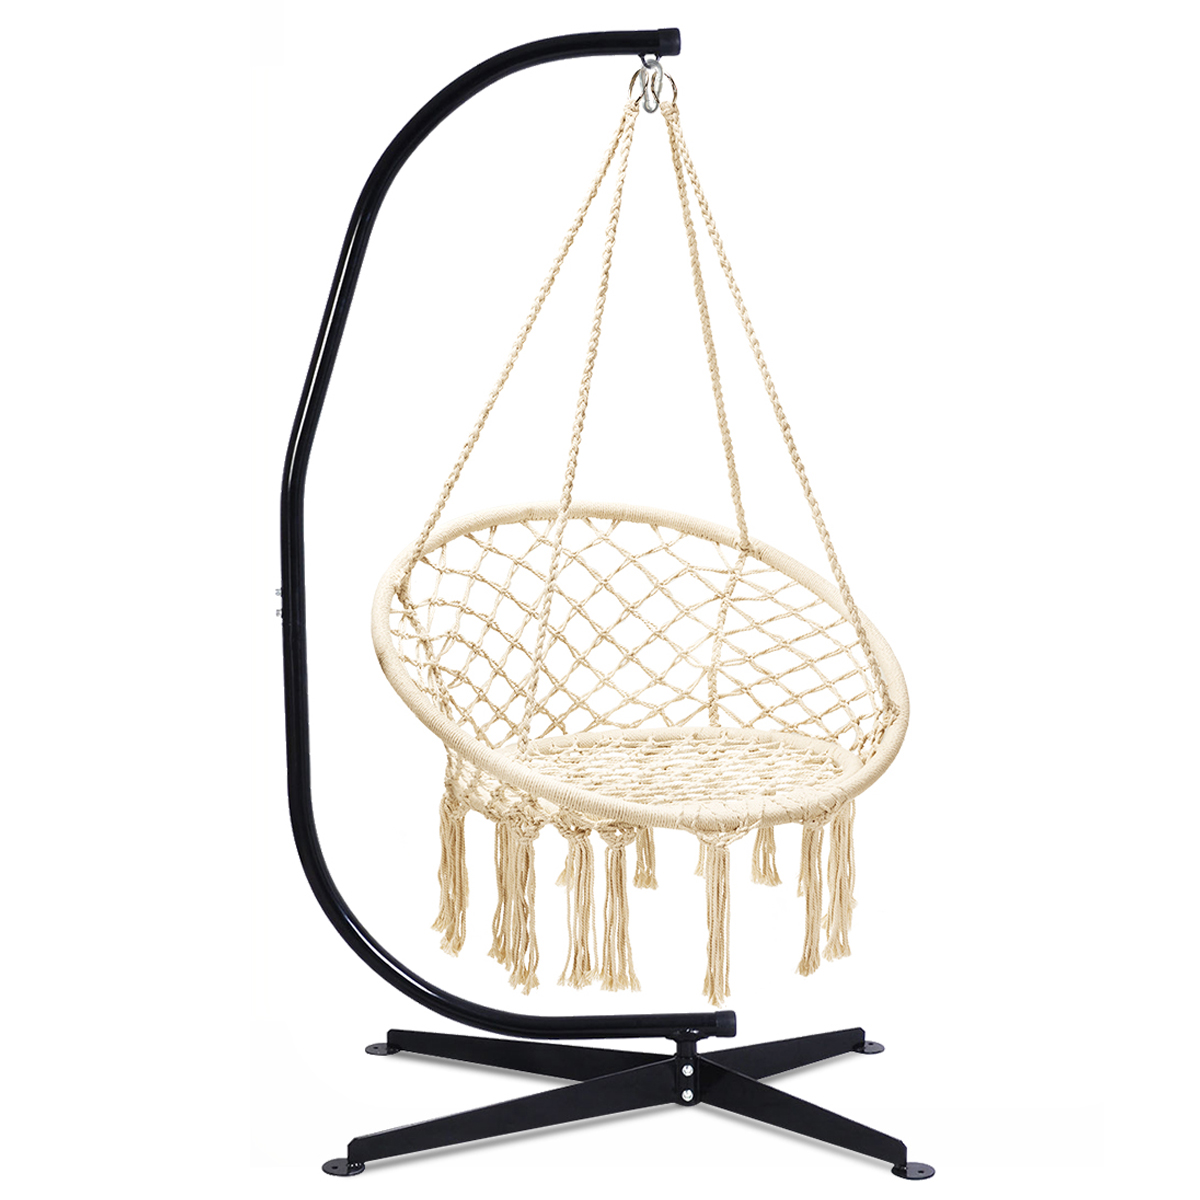 Costway C Hanging Hammock Stand Cotton Macrame Swing Chair Backrest